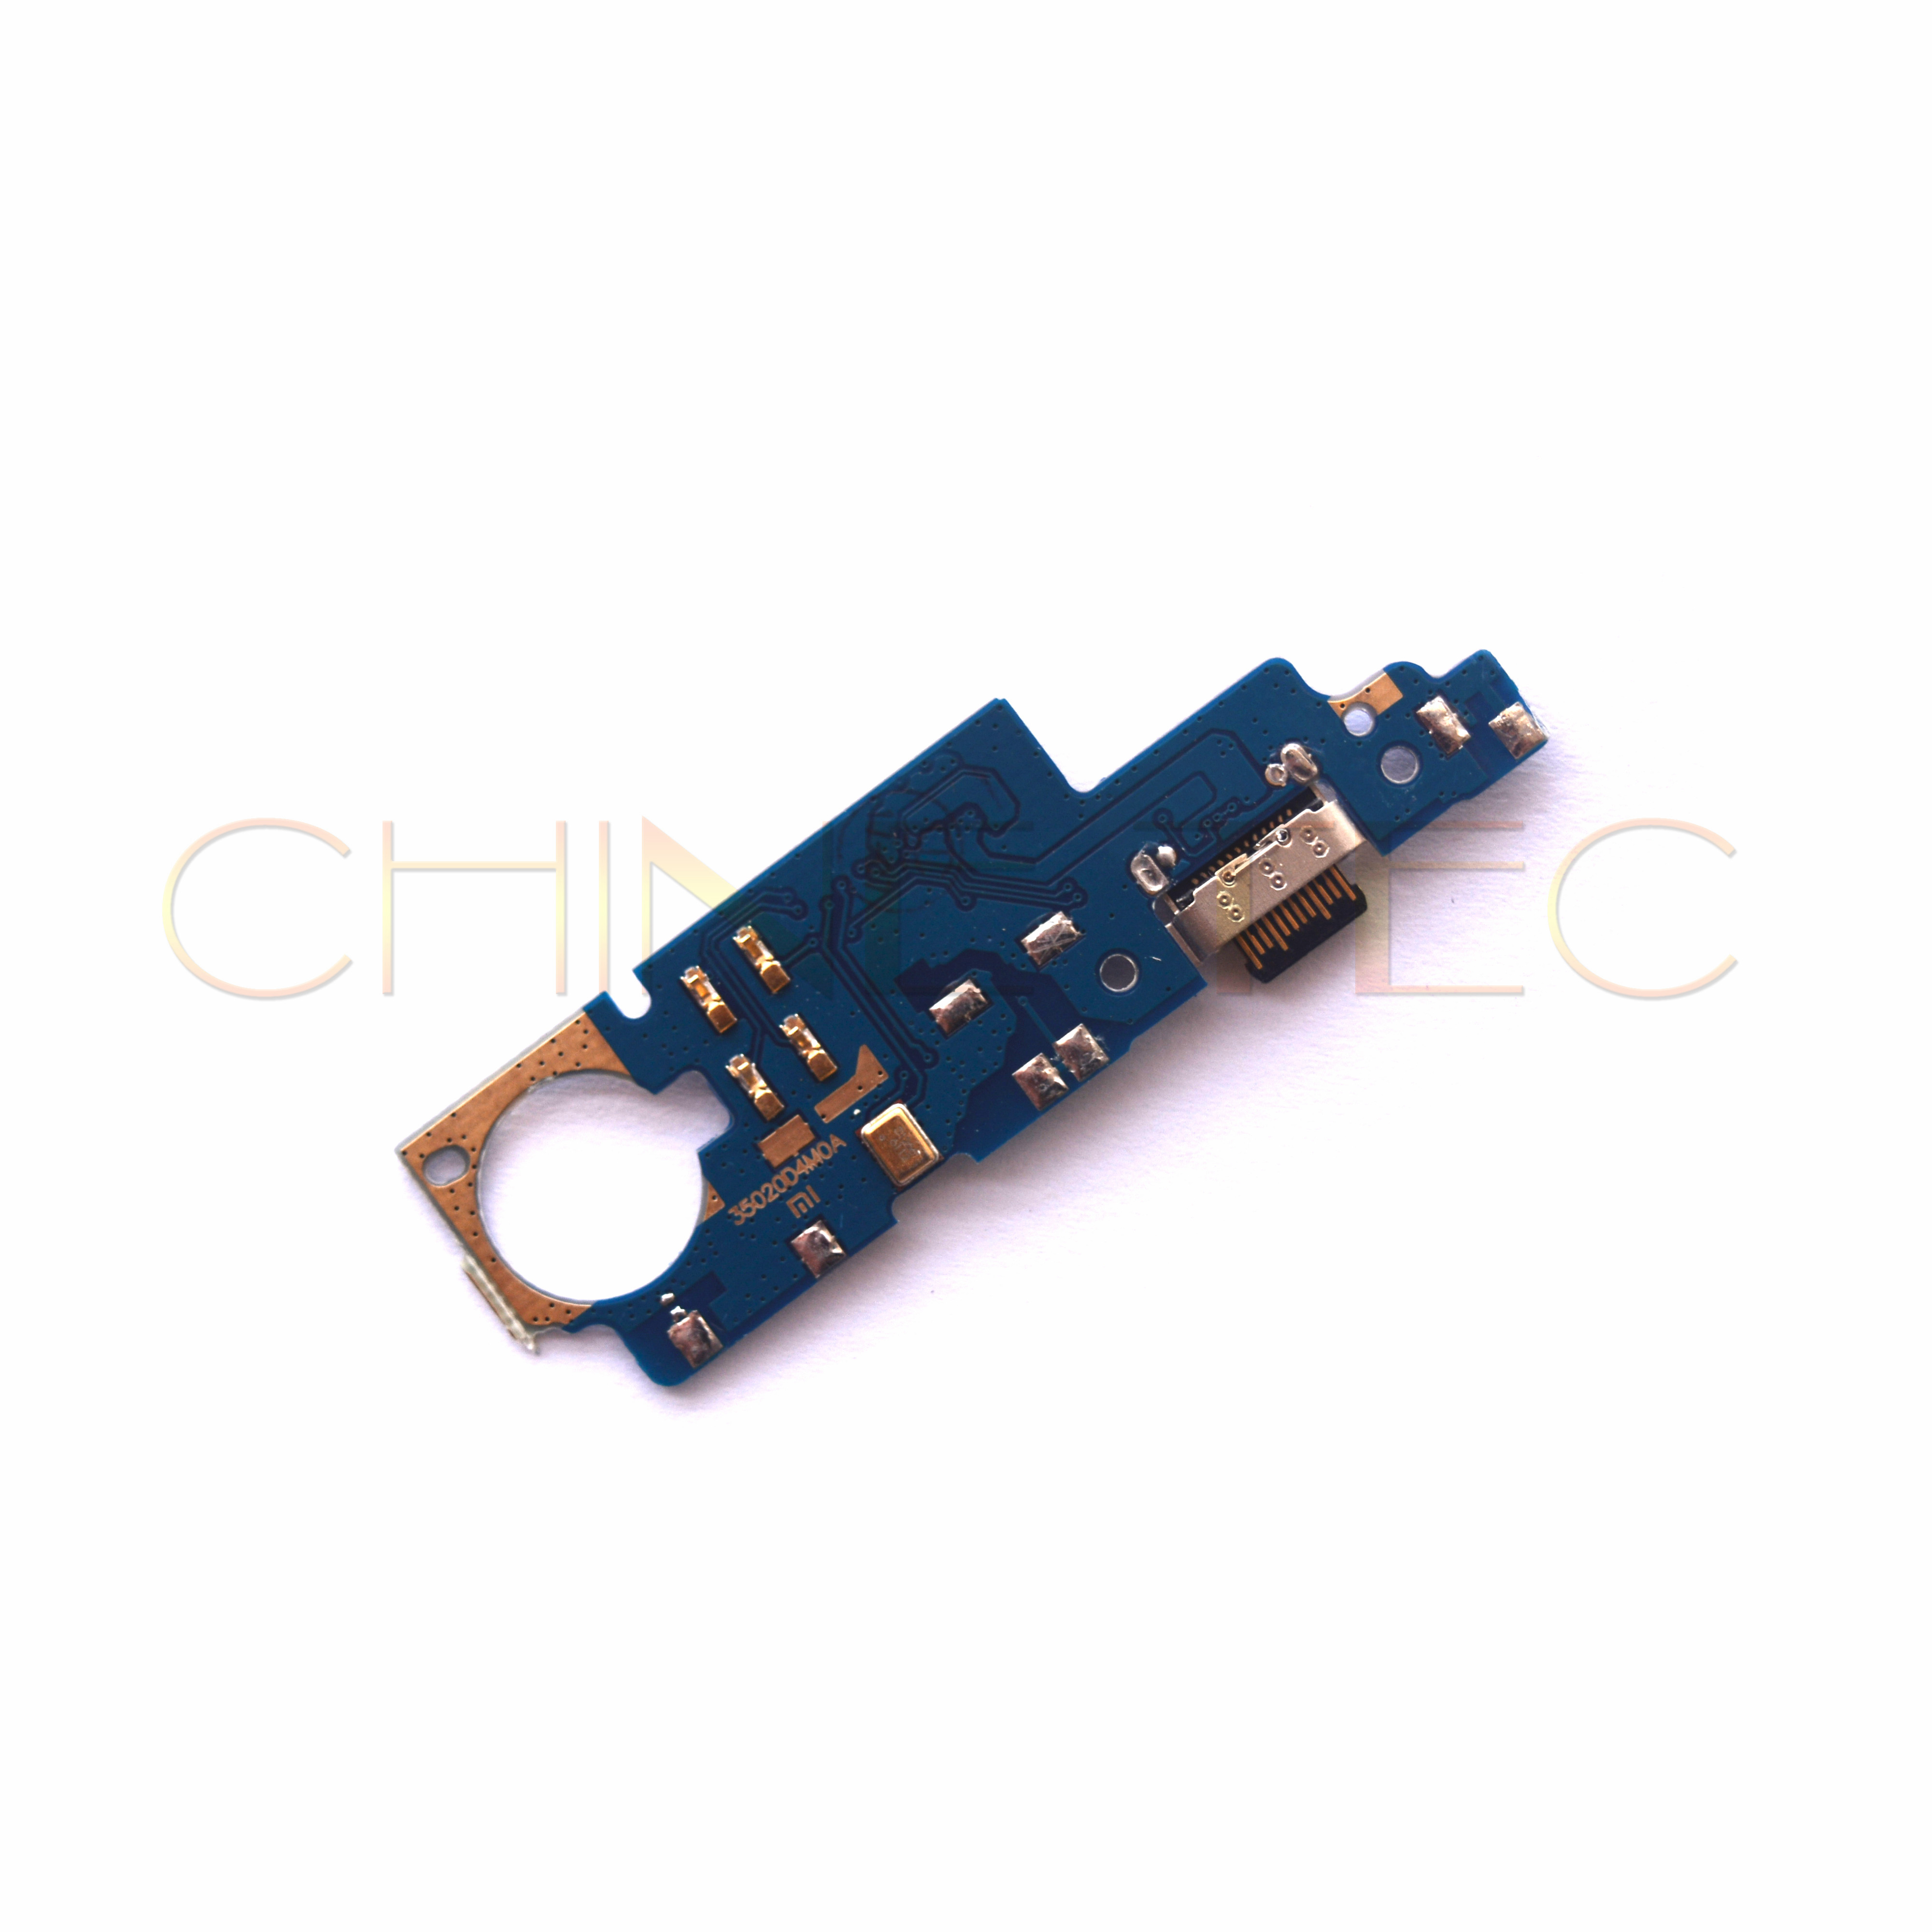 10pcs for XIAOMI MAX 2 MI MAX2 Micro USB type C Charger Charging Port board with microphone